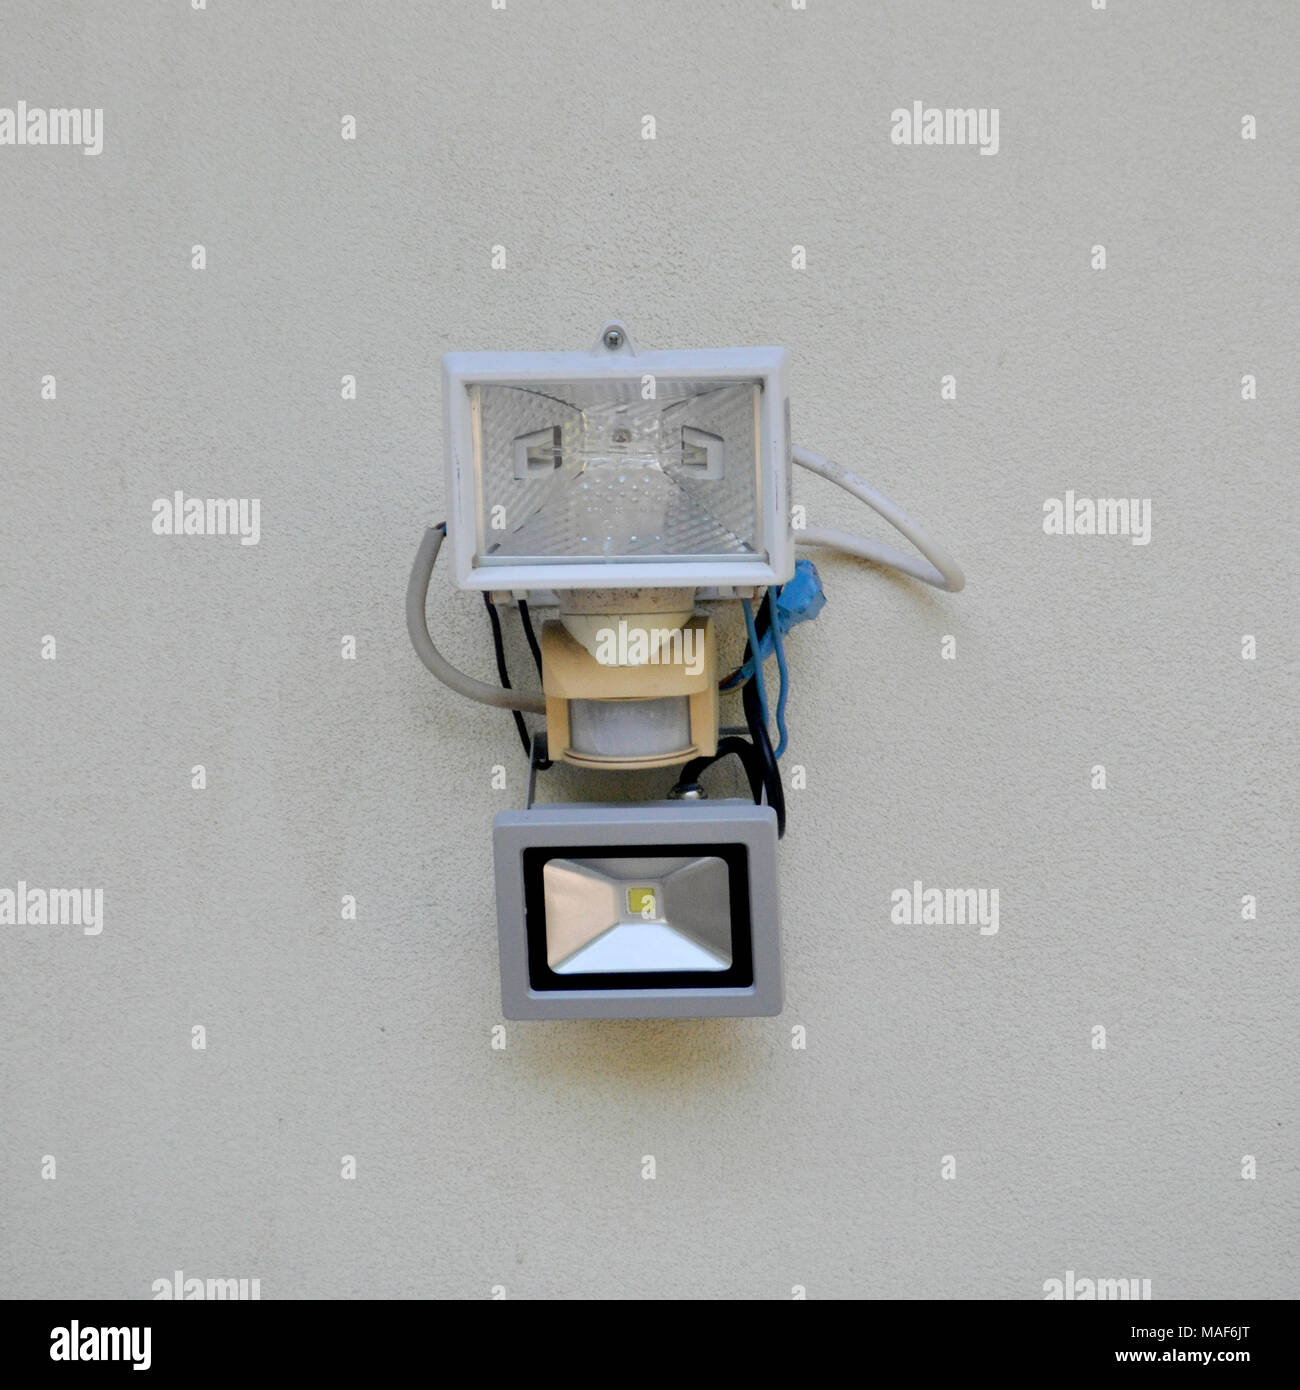 Halogen Light Stockfotos & Halogen Light Bilder - Alamy